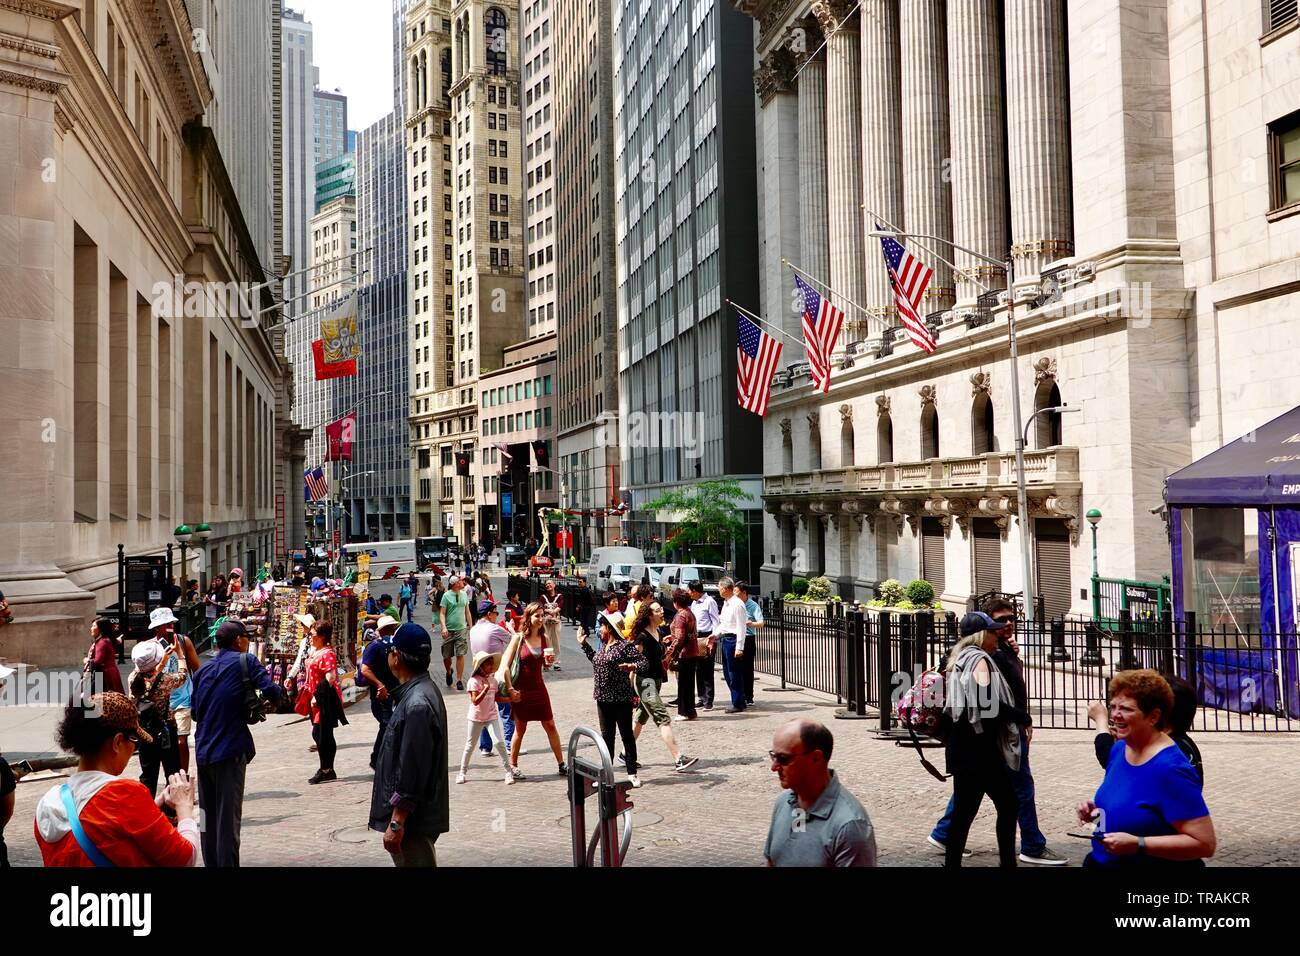 Tourists swarm the Broad Street Plaza in front of the New York Stock Exchange in on a June morning, Lower Manhattan, New York, NY, USA - Stock Image